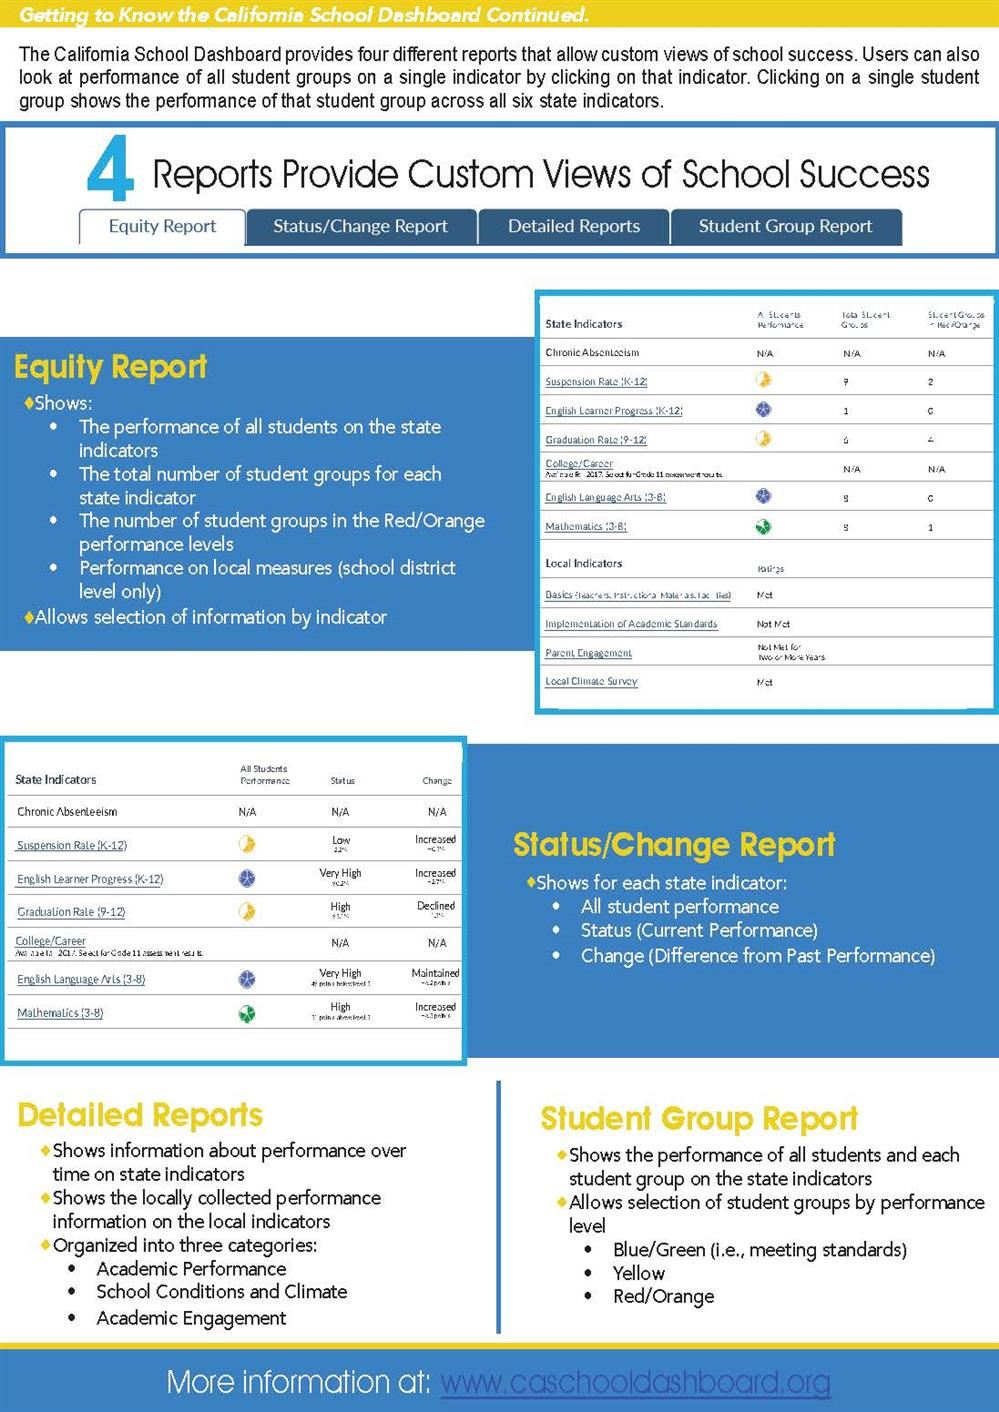 Image of the California School Dashboard - Page 2